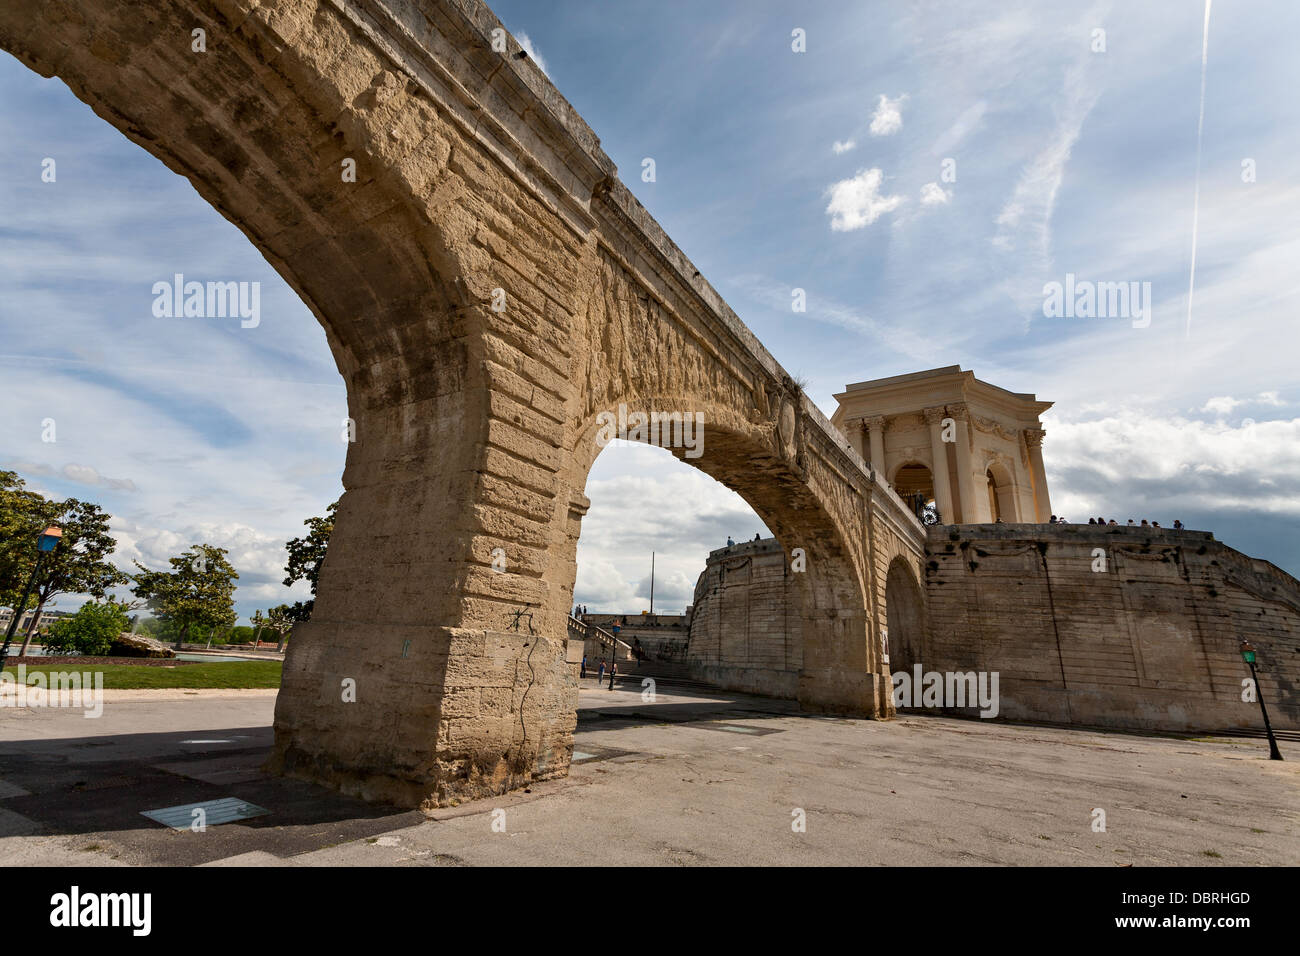 Aqueduct in Montpellier, France Stock Photo